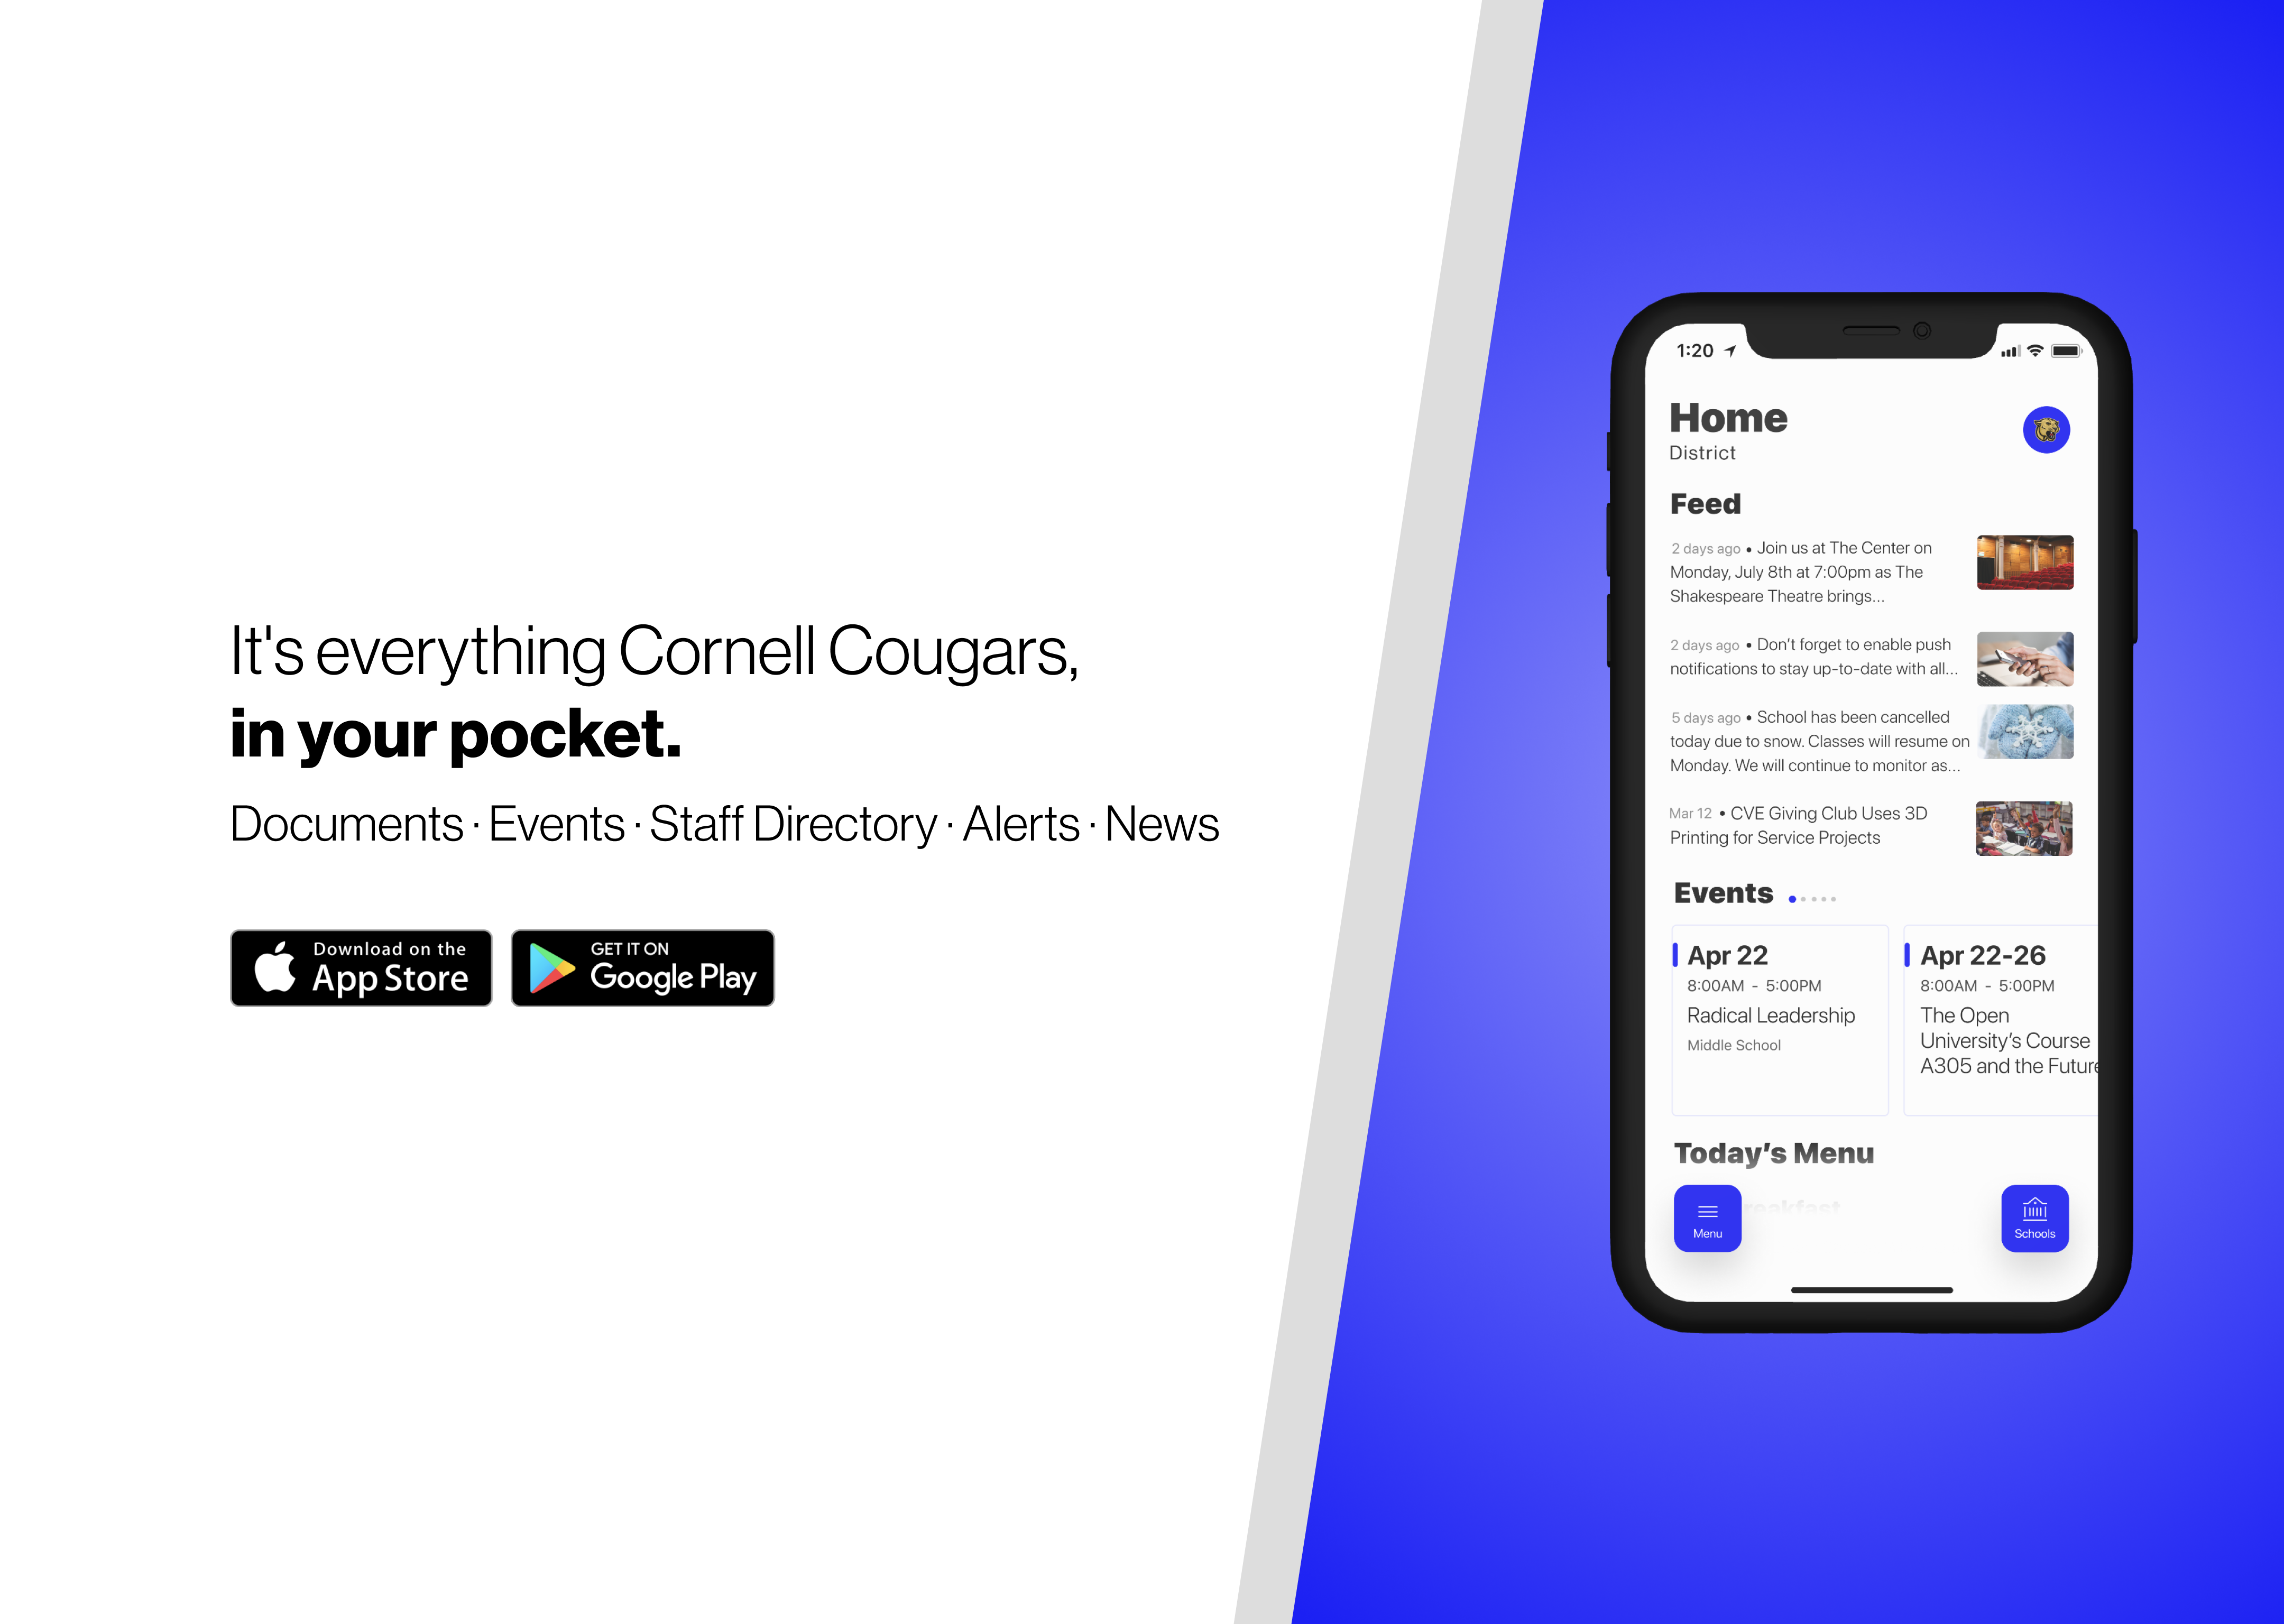 Advertisement for the Cornell Cougar app for iOS and Android